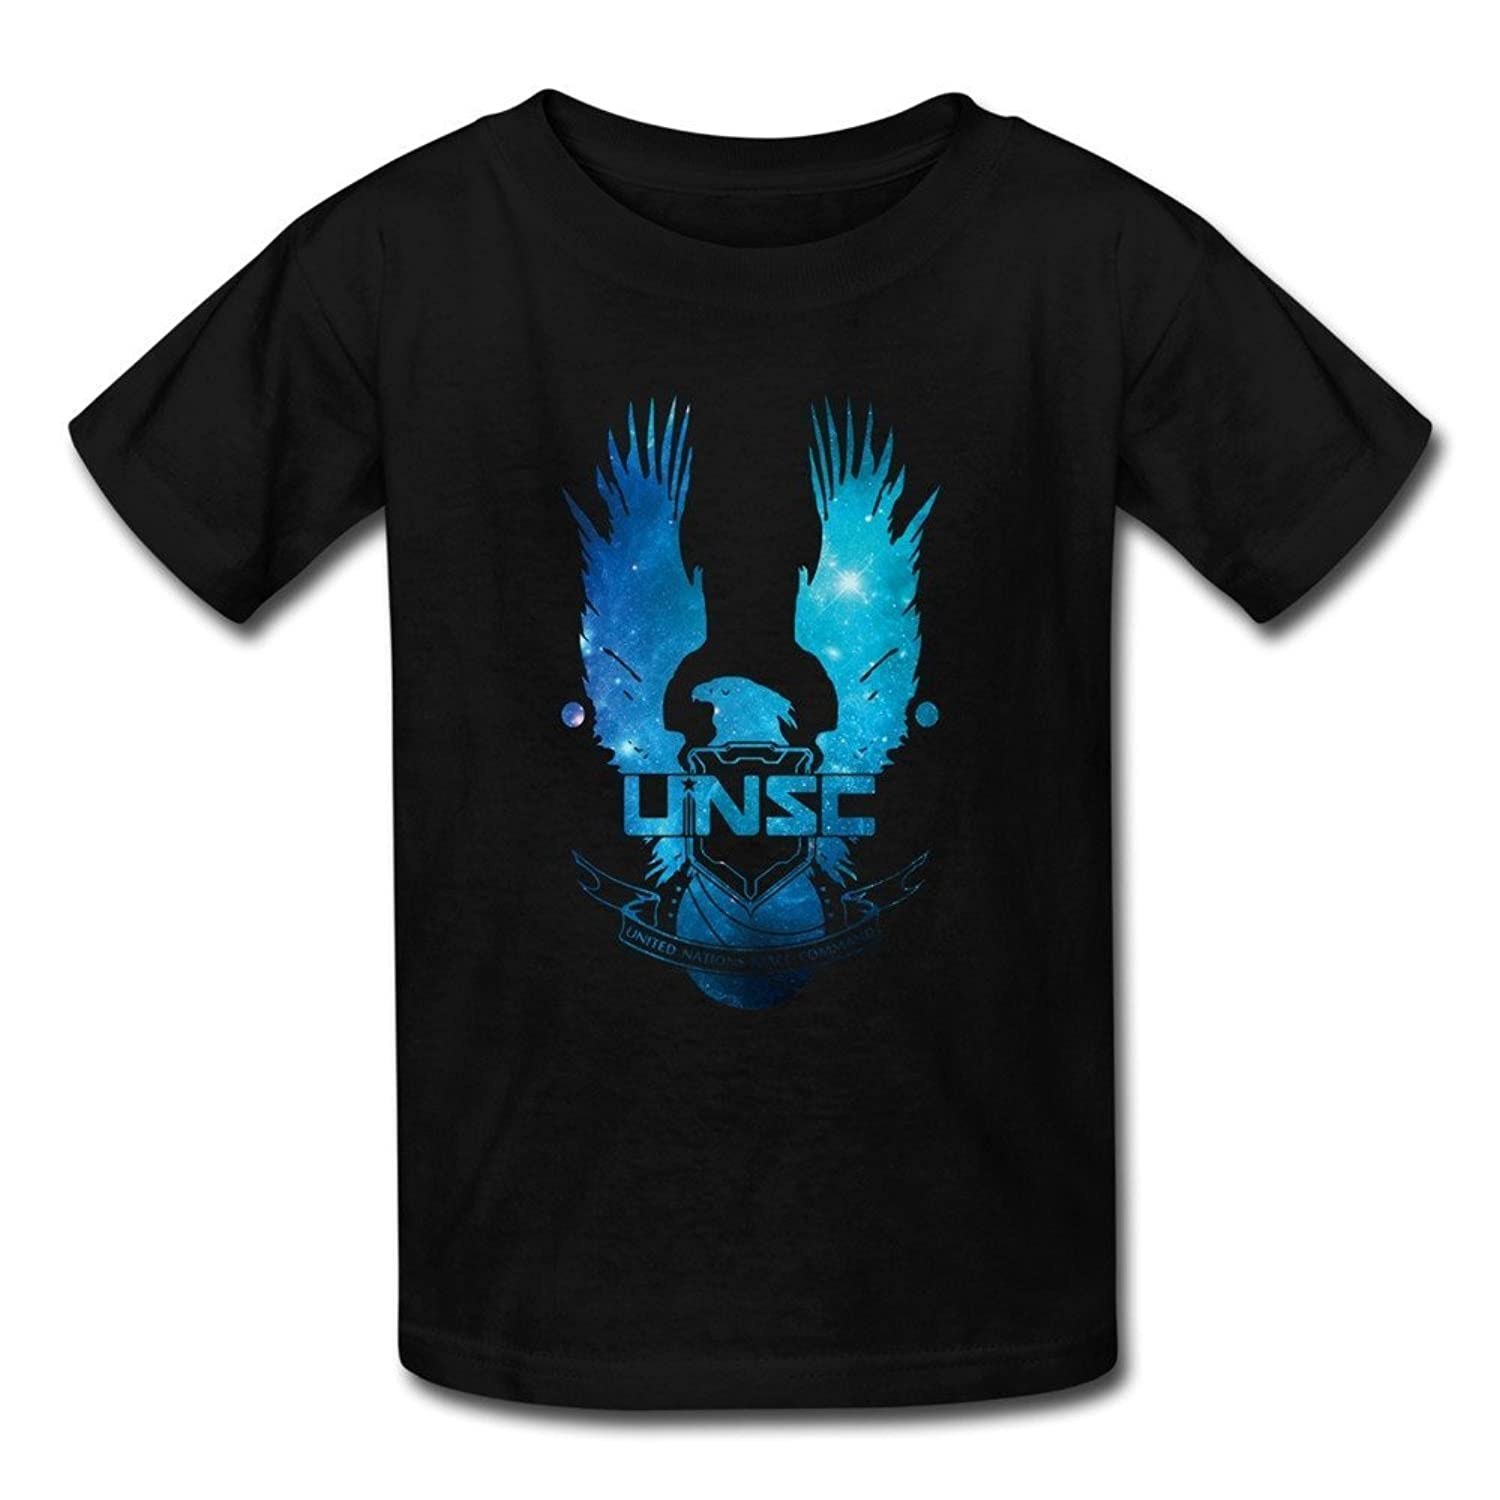 Youth's Halo 5 Guardians UNSC Eagle Logo T-shirts Black